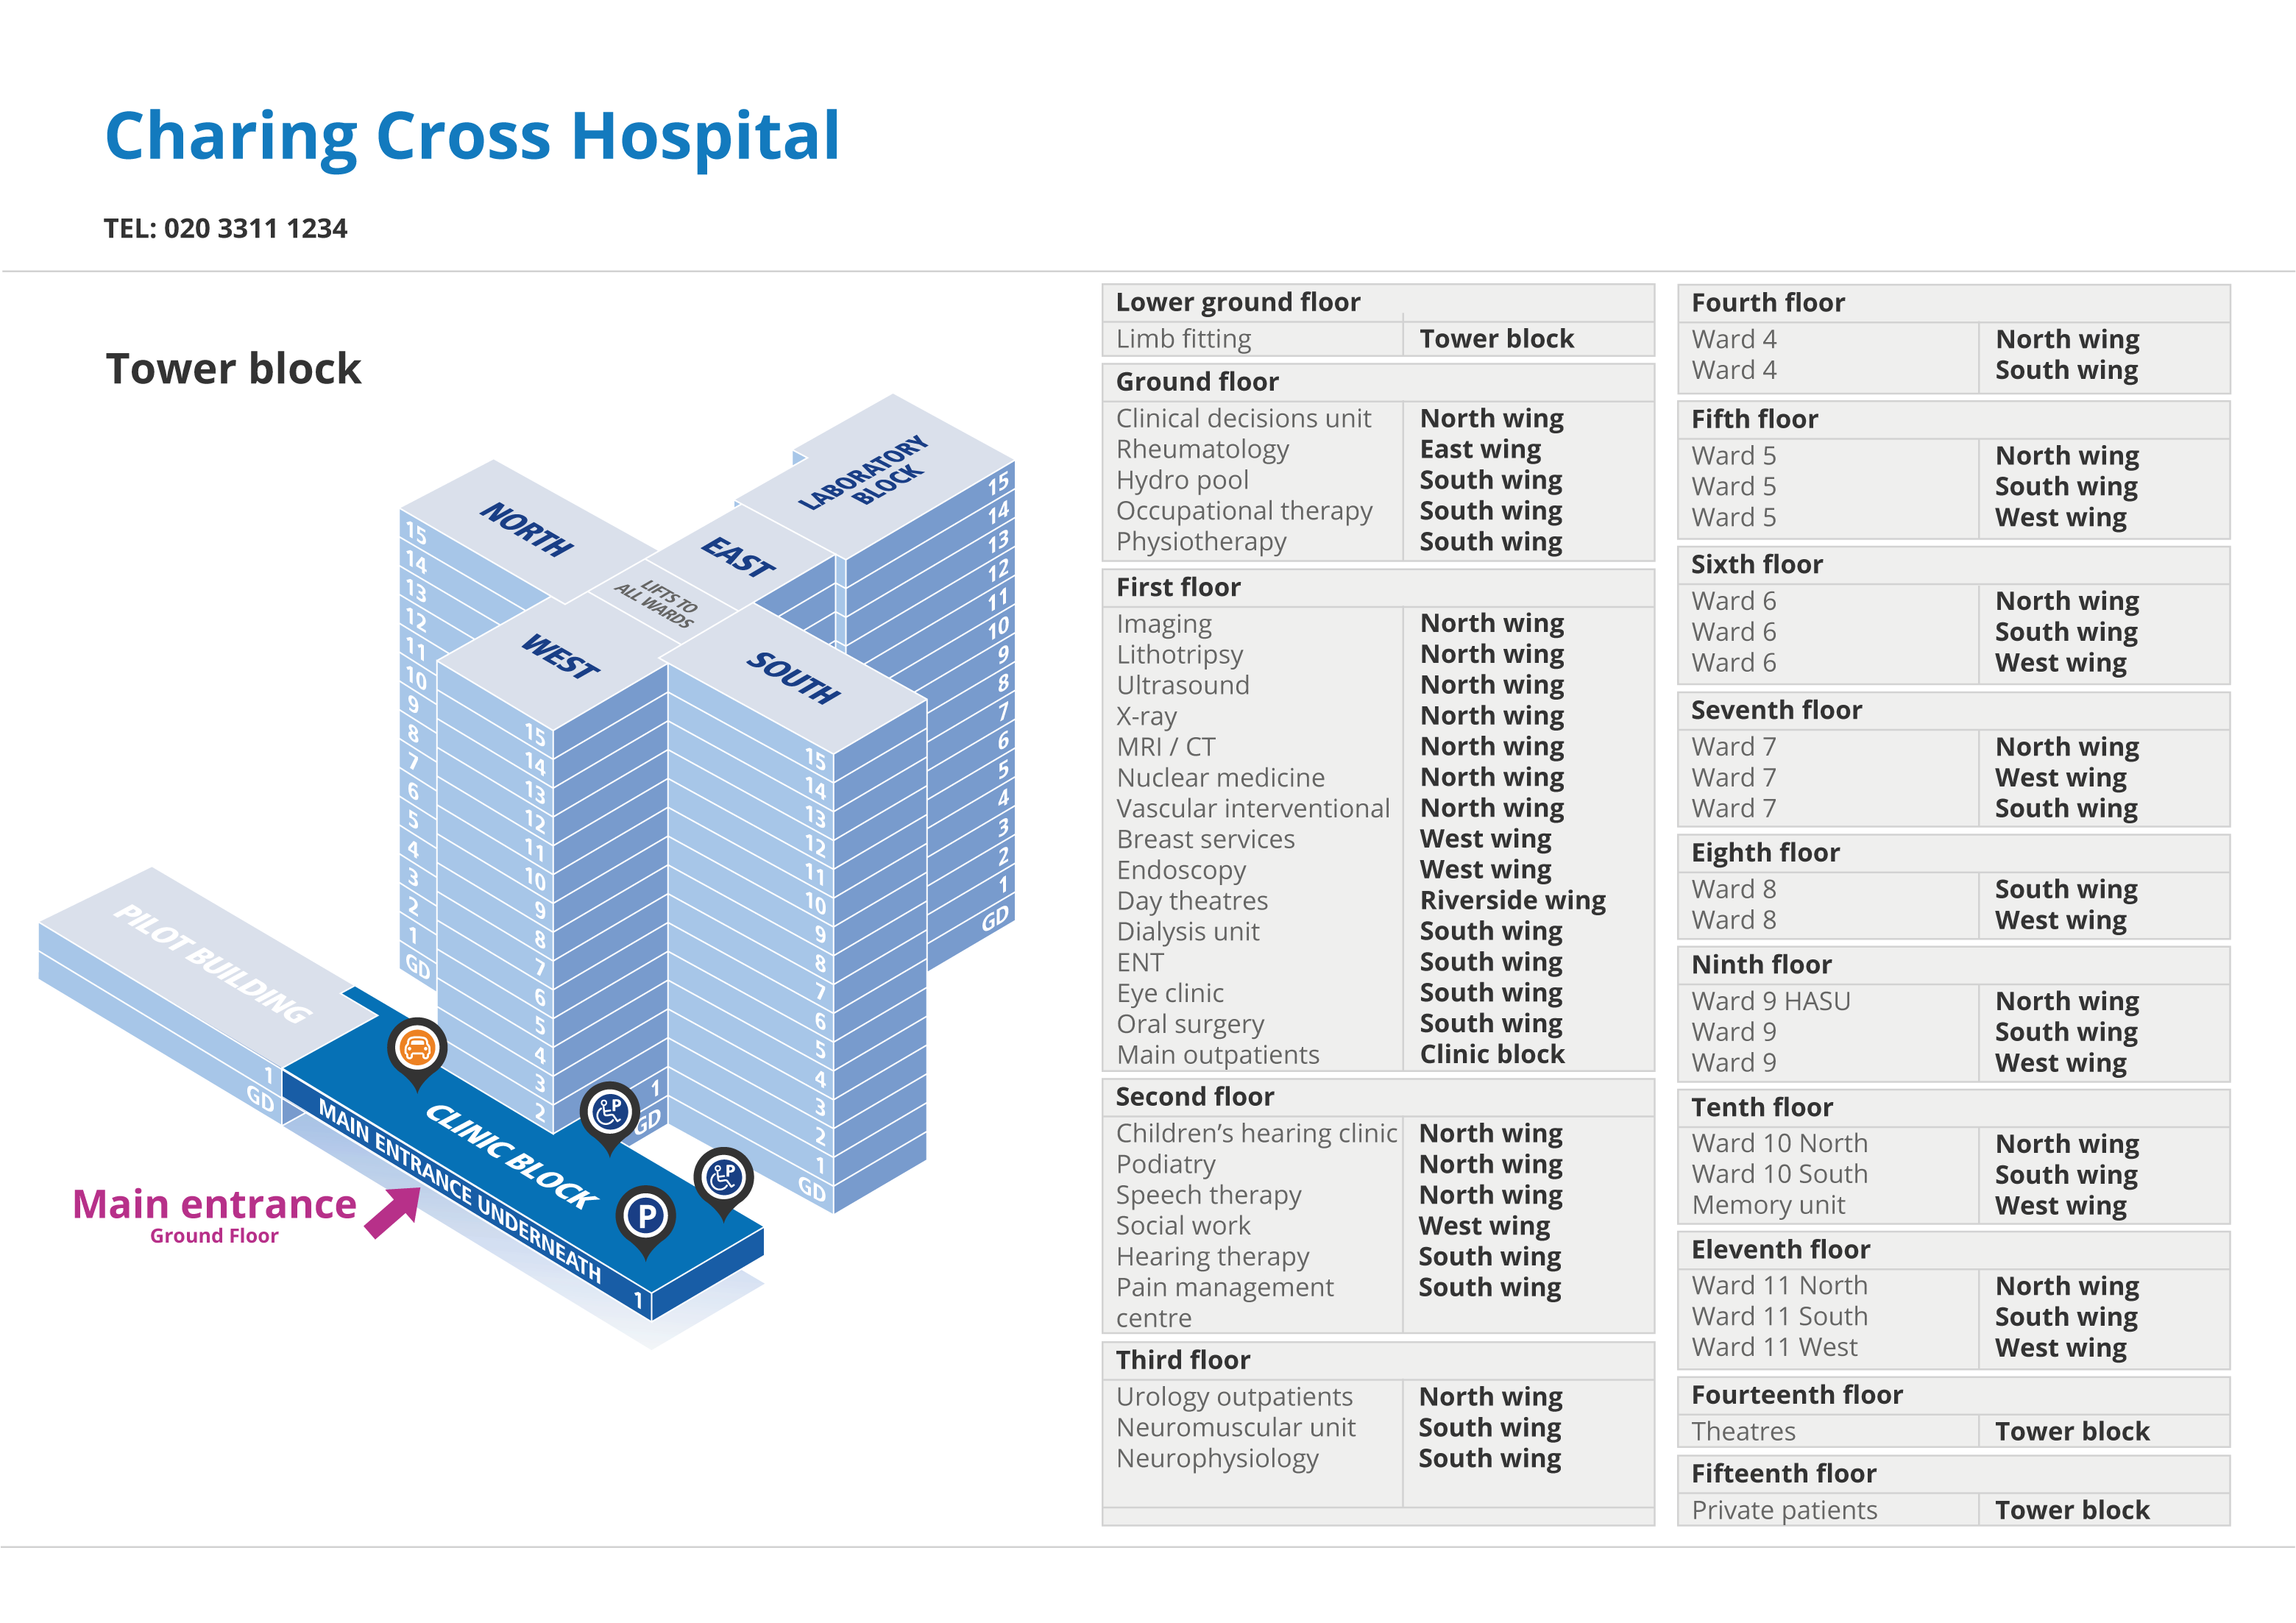 Charing Cross Hospital location map